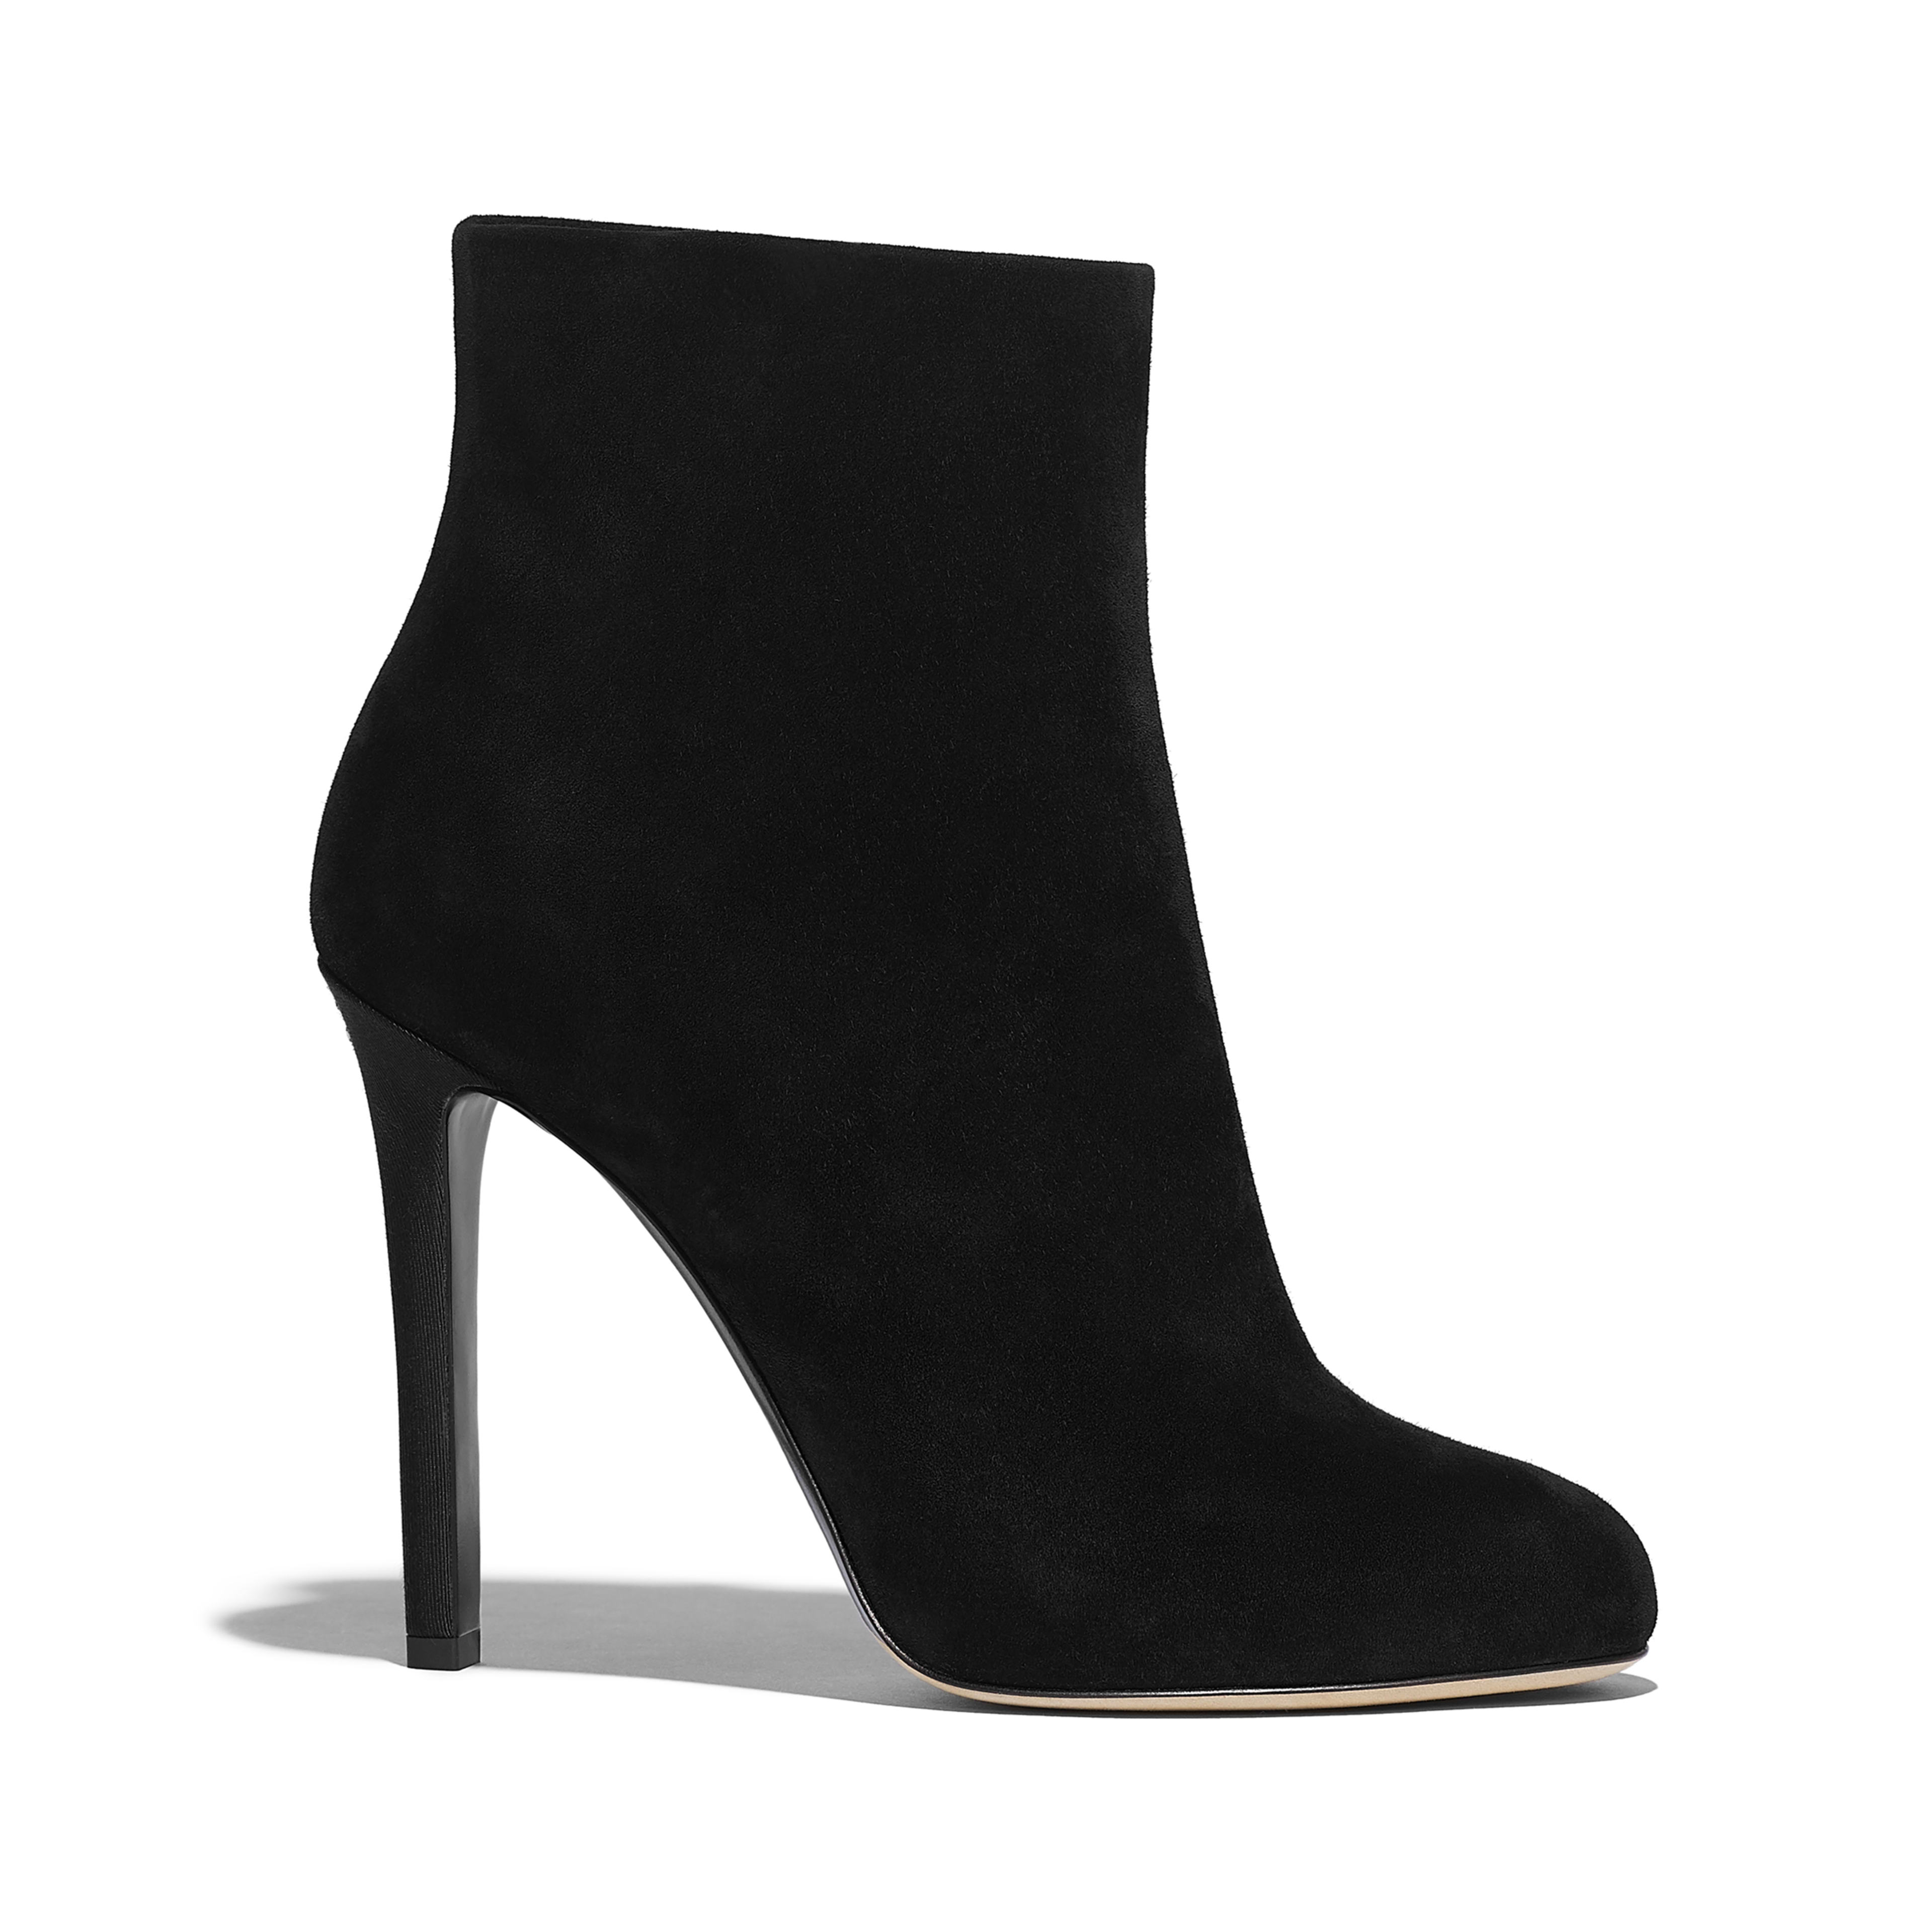 Ankle Boots - Black - Suede Calfskin - Default view - see full sized version